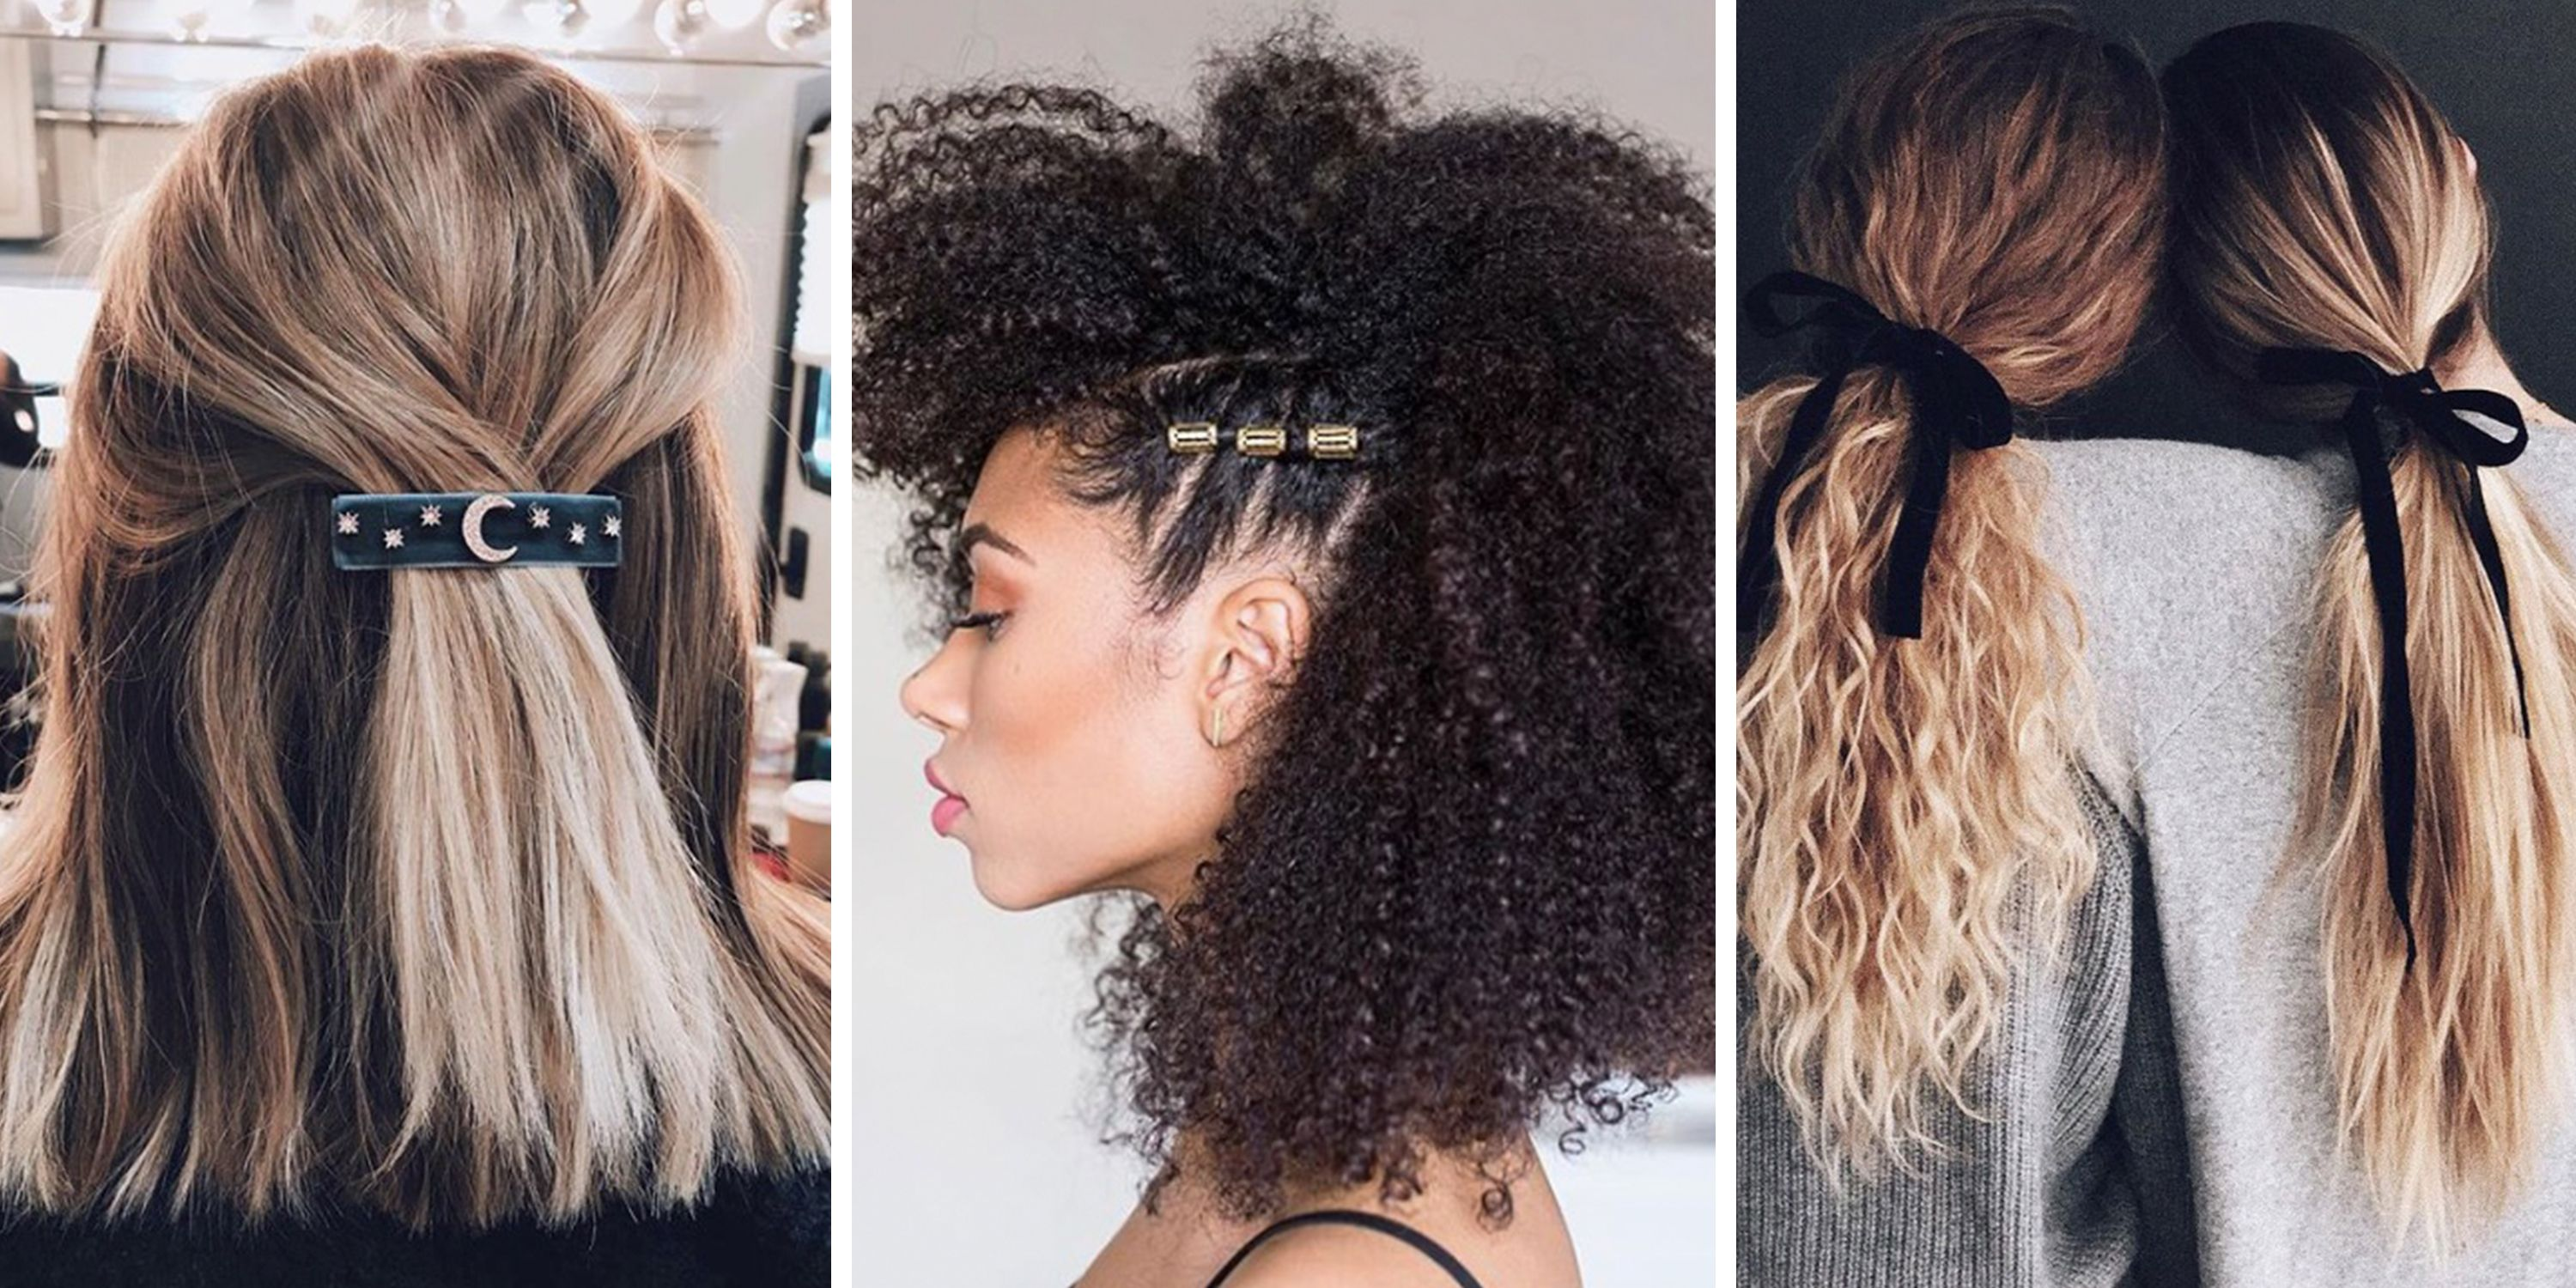 21 hair trends that are going to be huge in 2018